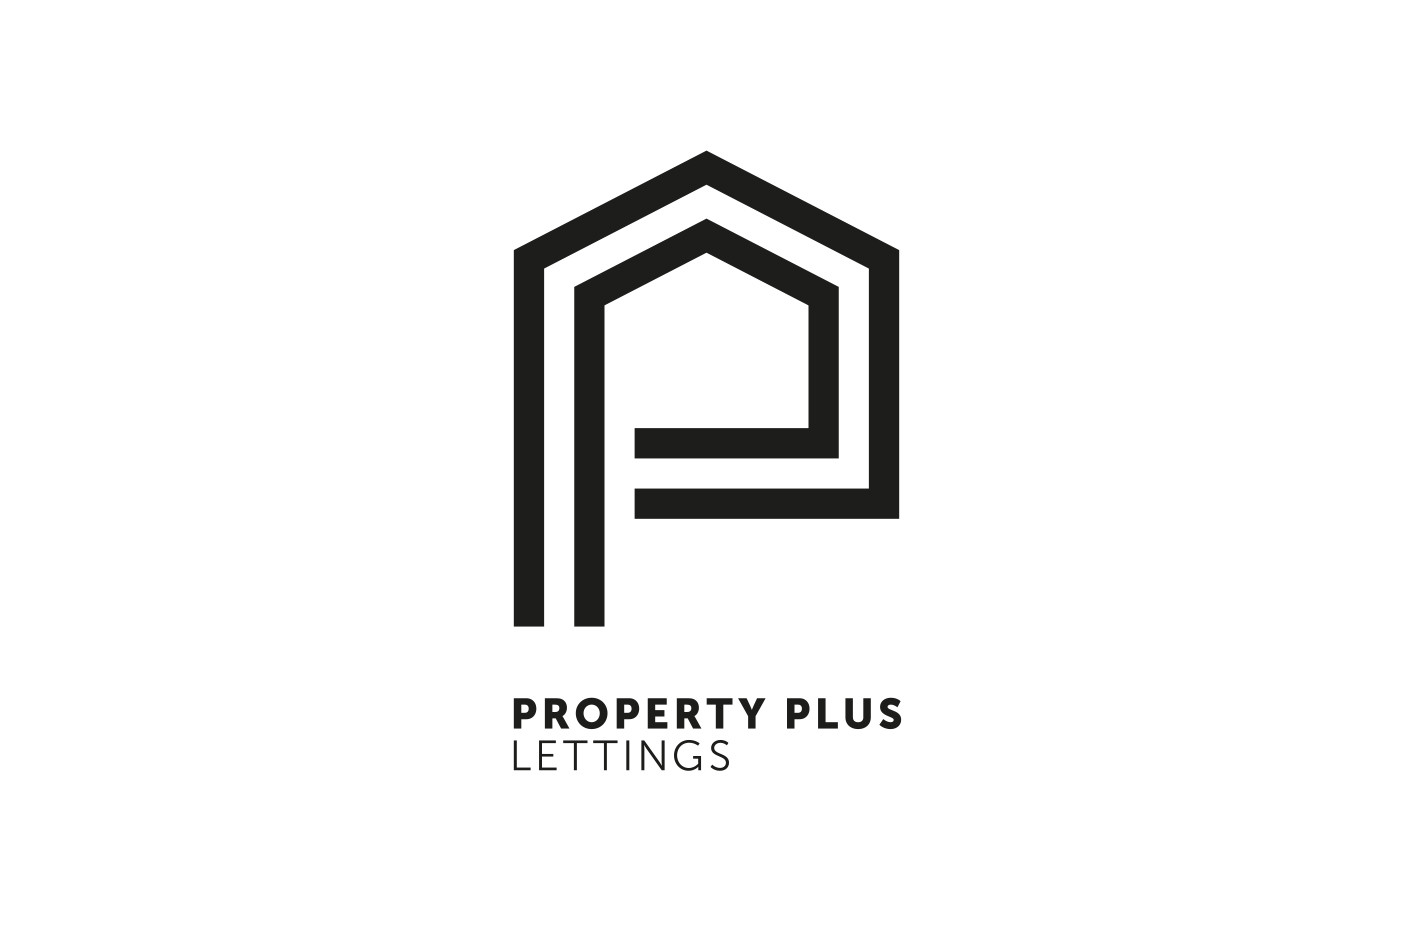 Property Plus Lettings  Branding for a well established property letting and sales company in the South East.